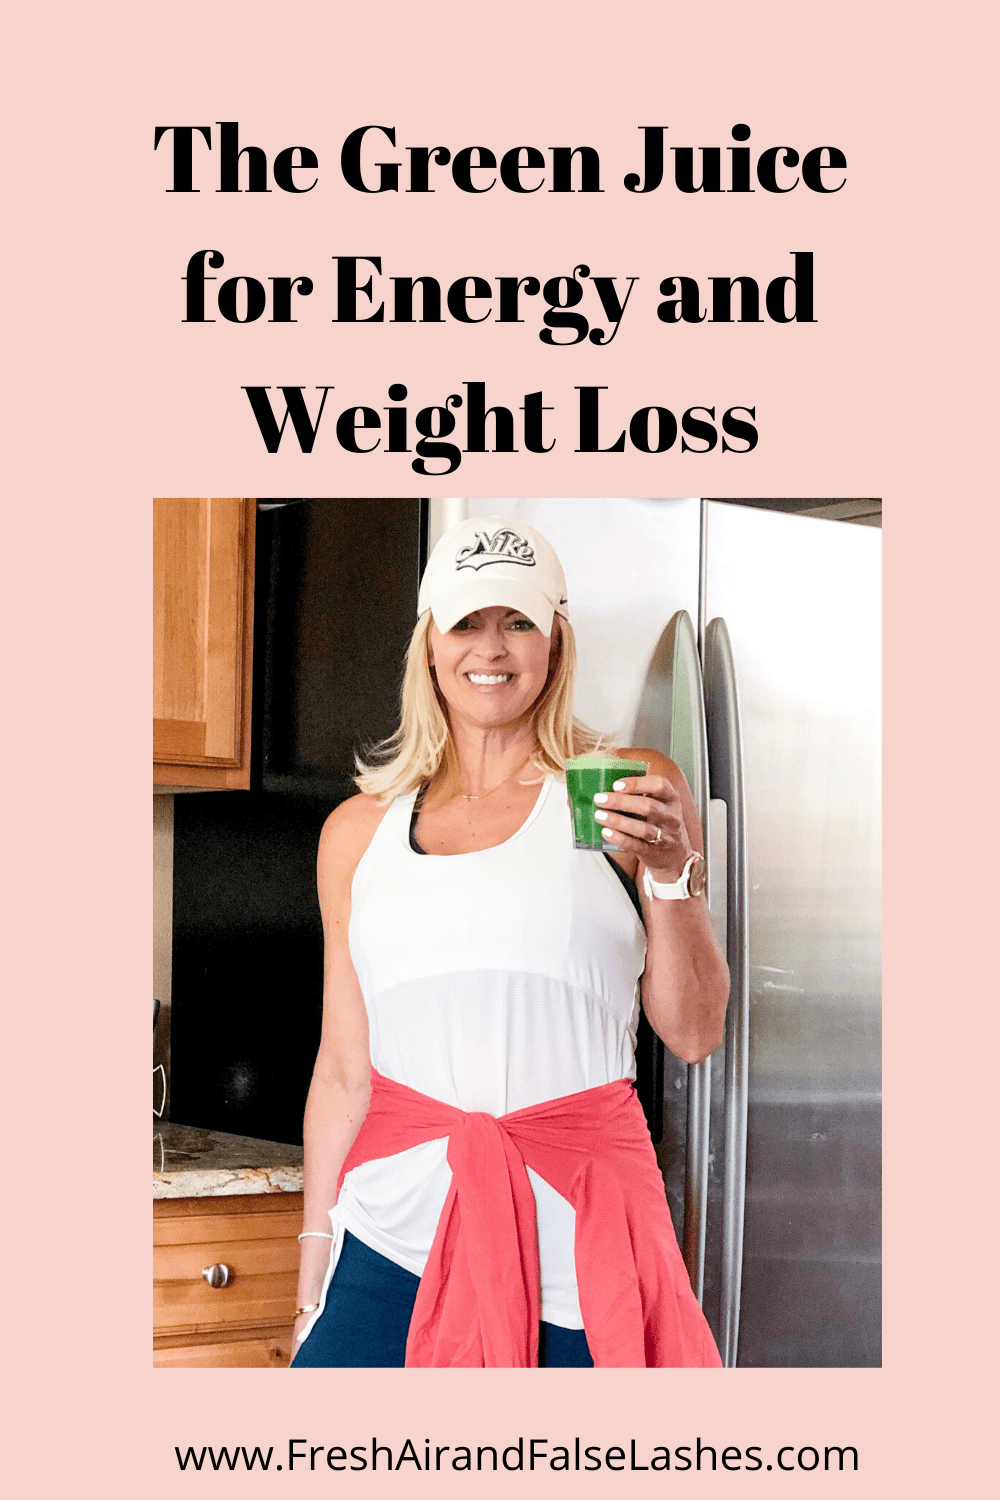 The Green Juice for Energy and weight loss.